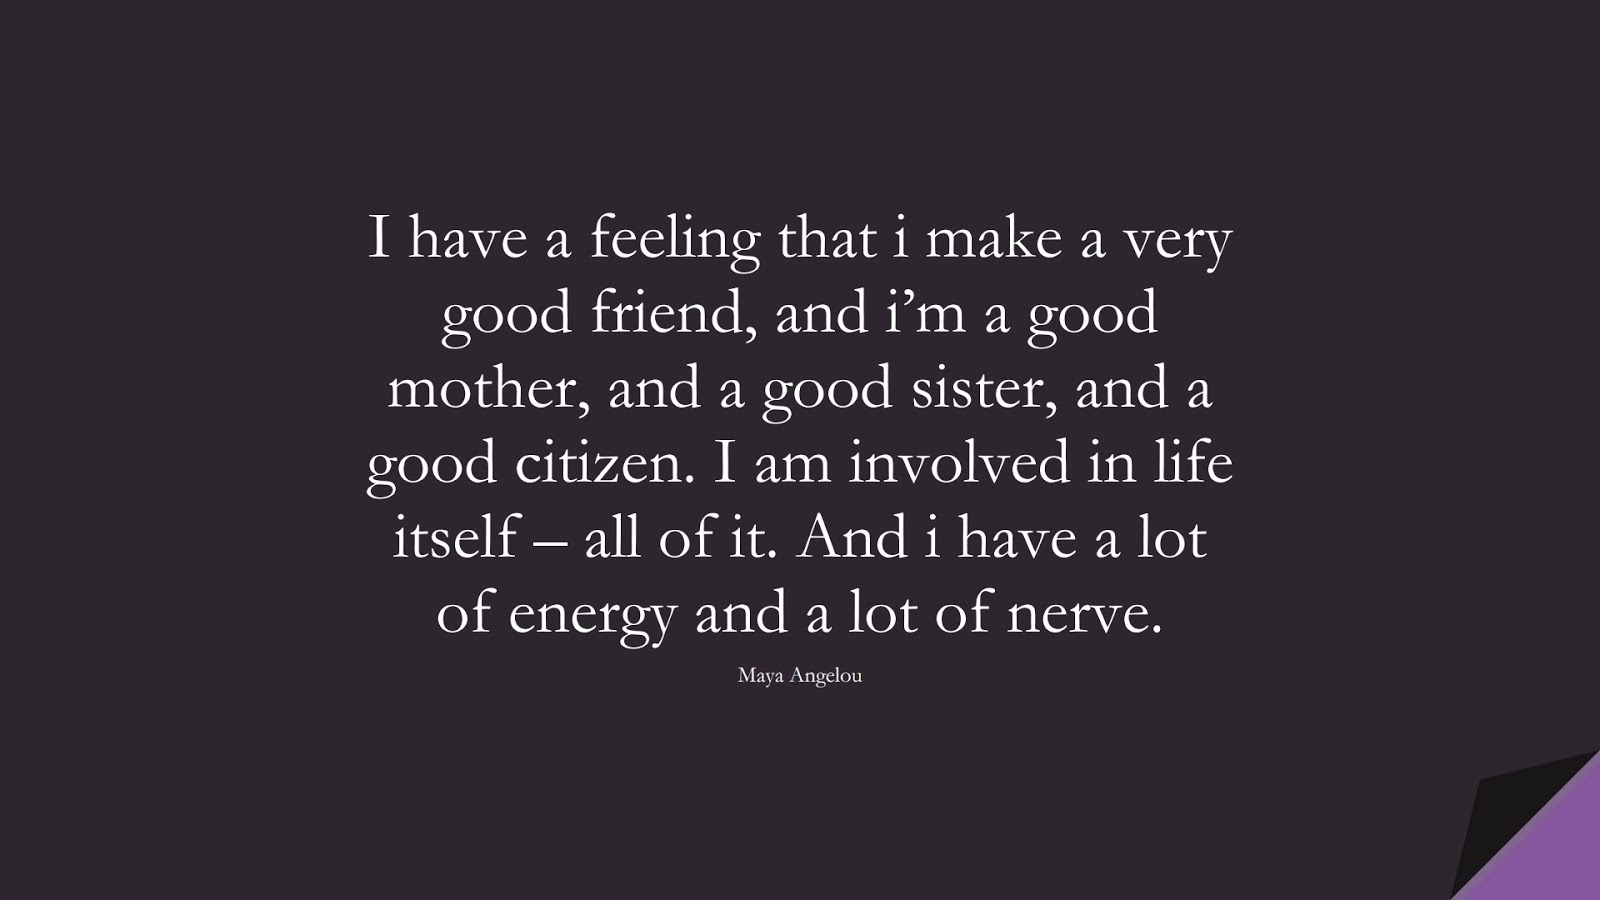 I have a feeling that i make a very good friend, and i'm a good mother, and a good sister, and a good citizen. I am involved in life itself – all of it. And i have a lot of energy and a lot of nerve. (Maya Angelou);  #MayaAngelouQuotes